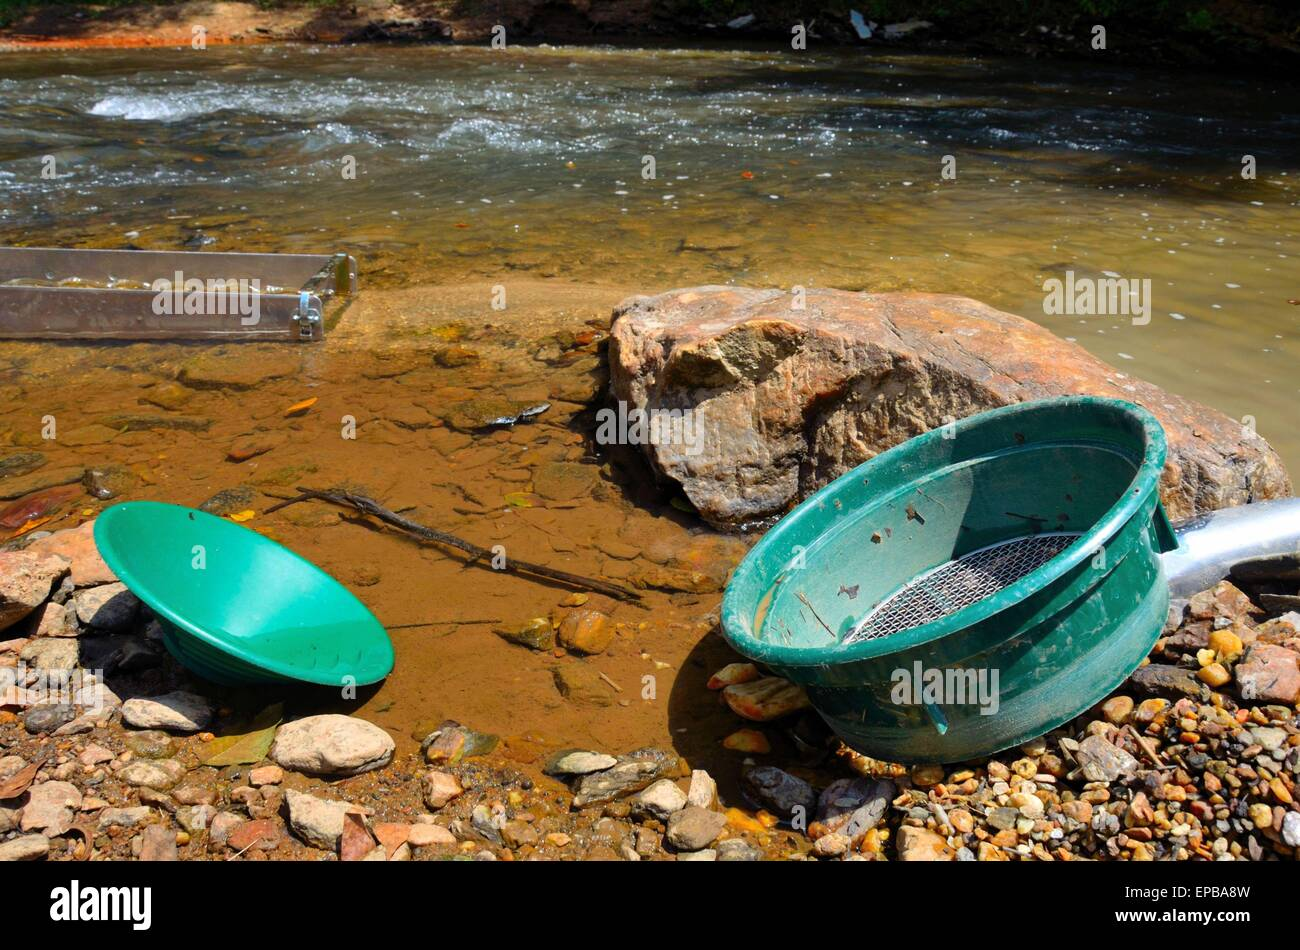 Panning for gold with a sluice box, sifter and pan, set up in the river - Stock Image